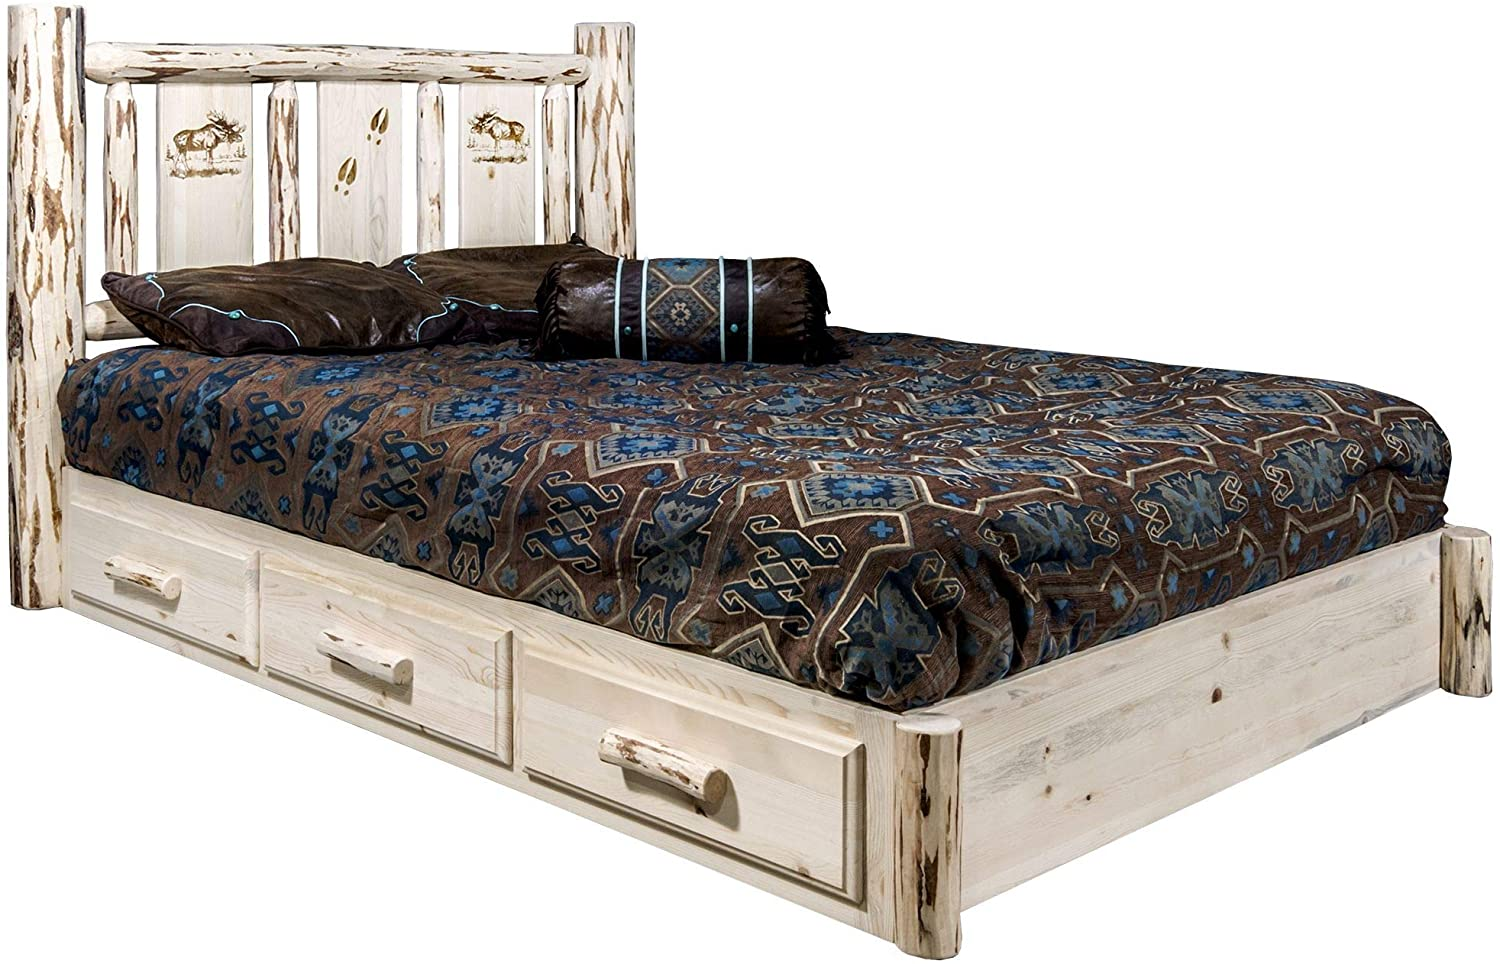 Montana Woodworks Moose Design Laser Engraved Platform Bed in Ready Finish (Queen: 91 in. L x 66 in. W x 47 in. H (266 lbs.))